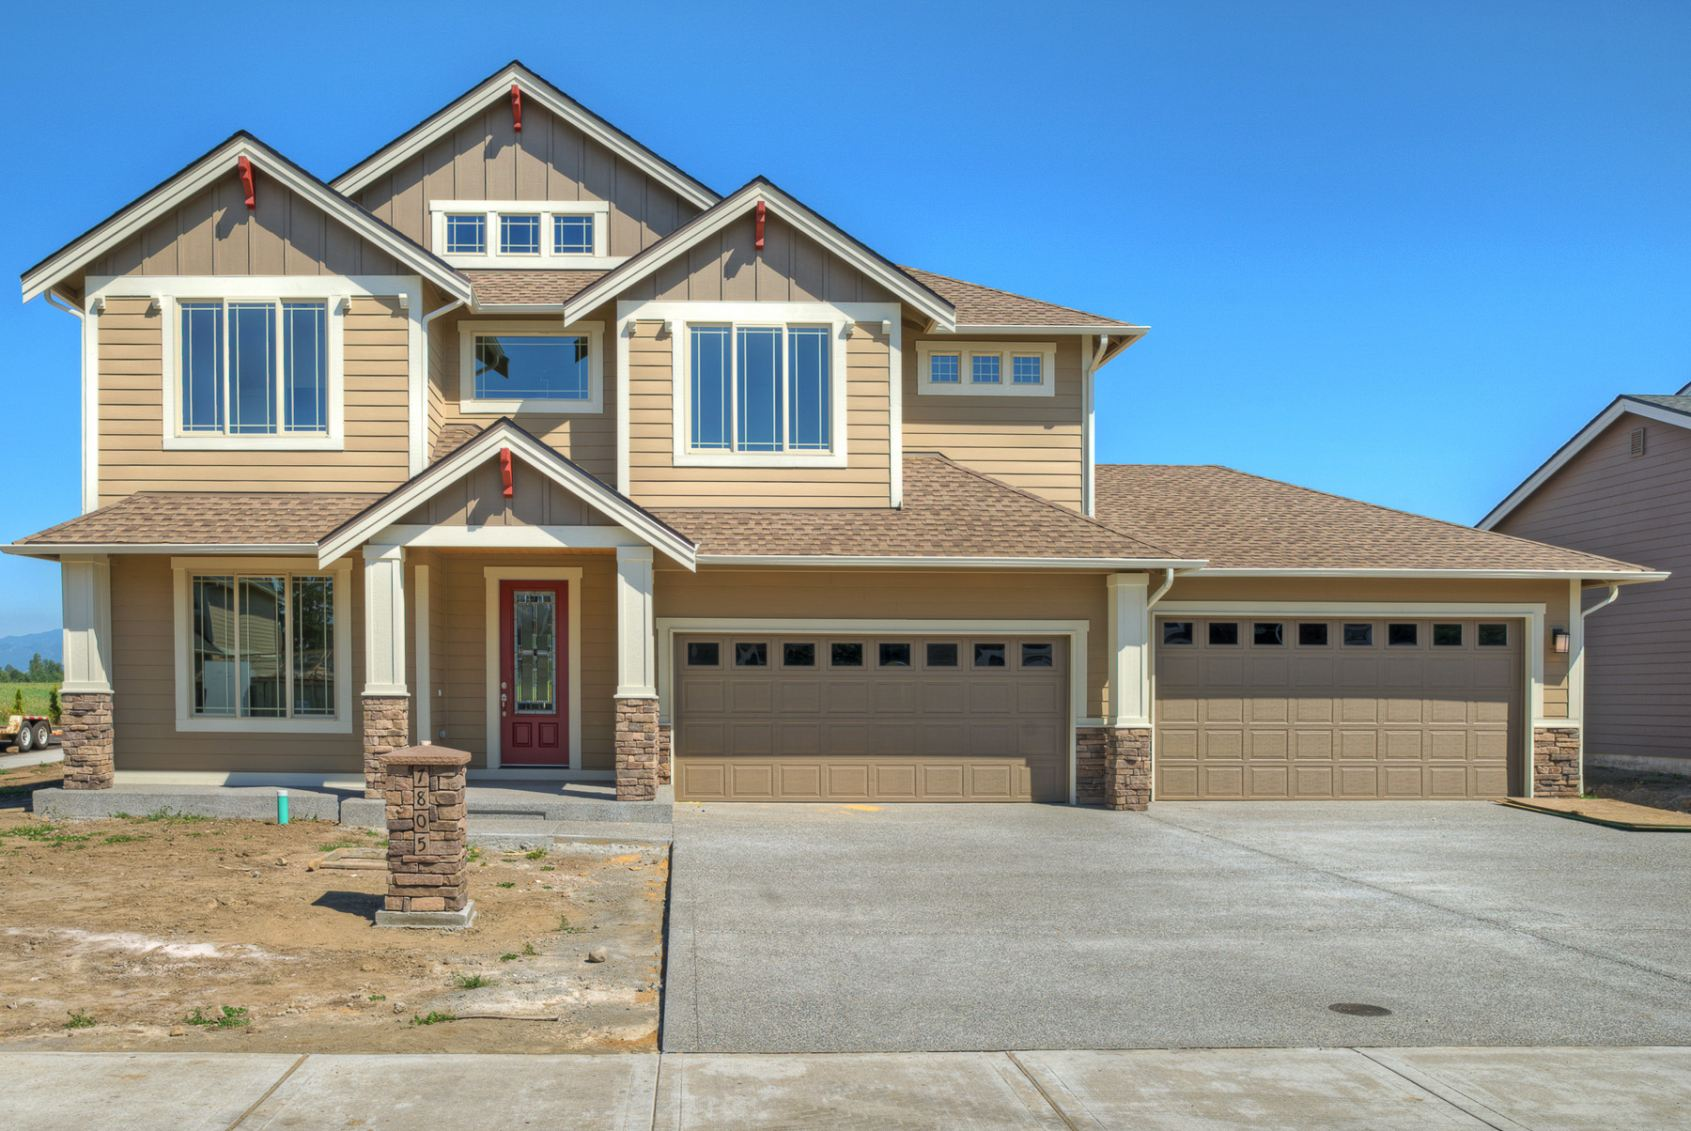 Lot 21 at Chinook Meadows in Bonney Lake